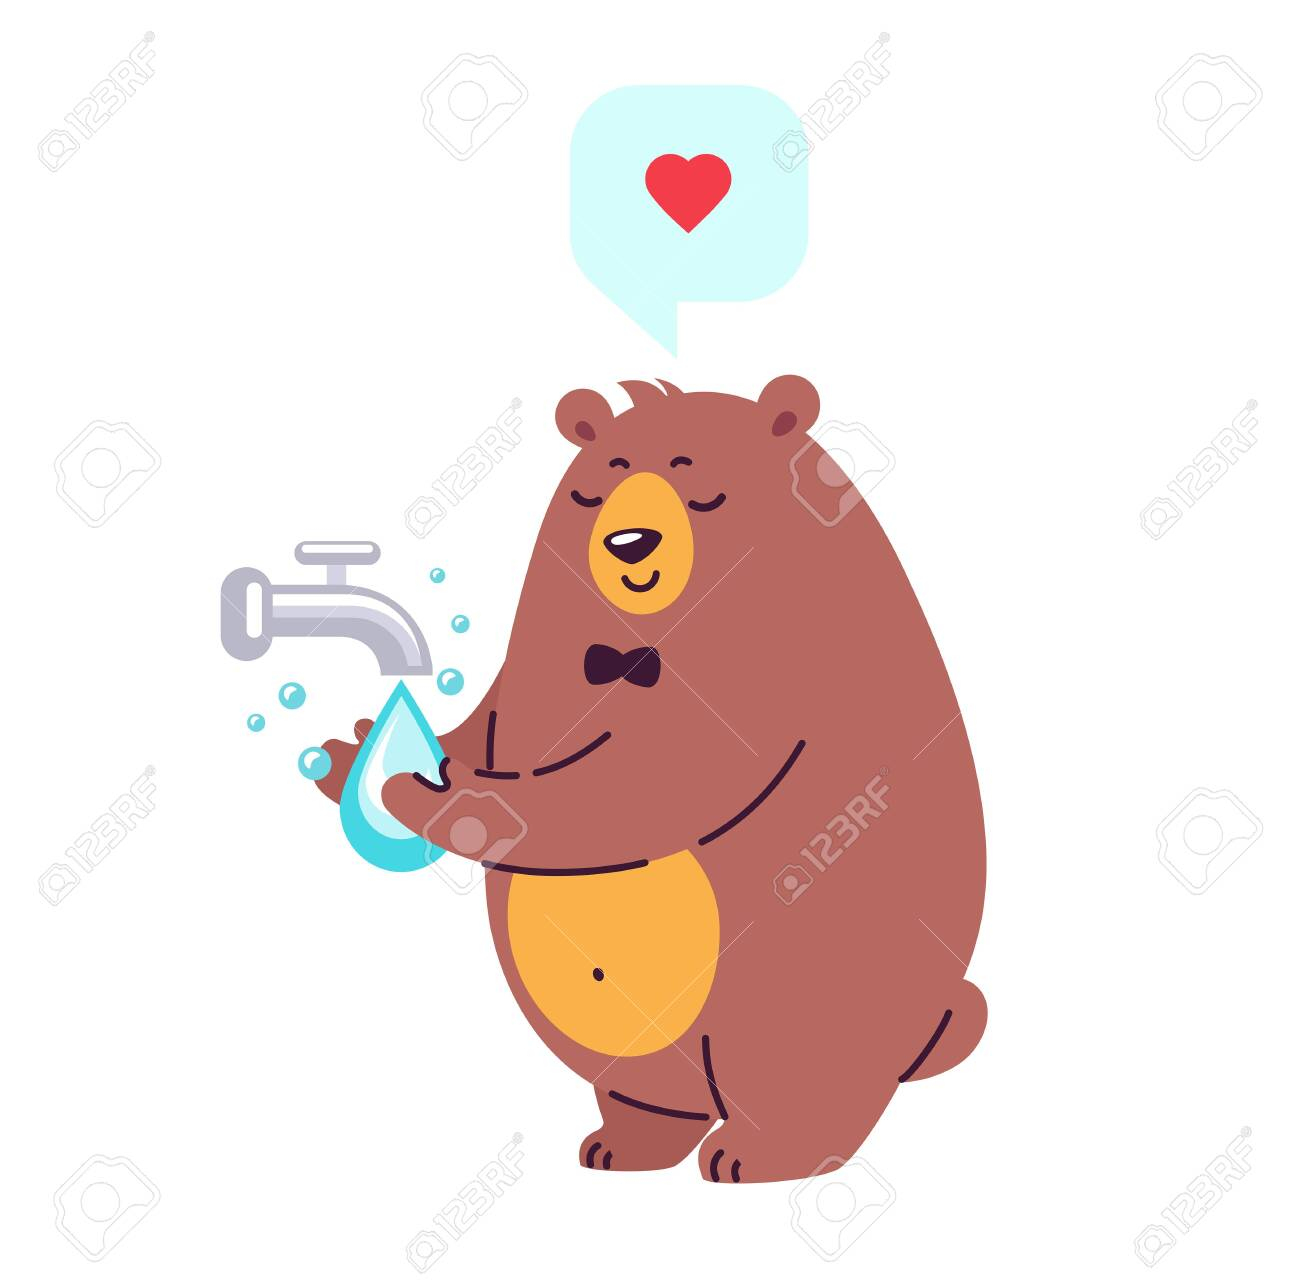 Smiling bear character washing hands under running water - vector illustration in cartoon flat style - 146822595